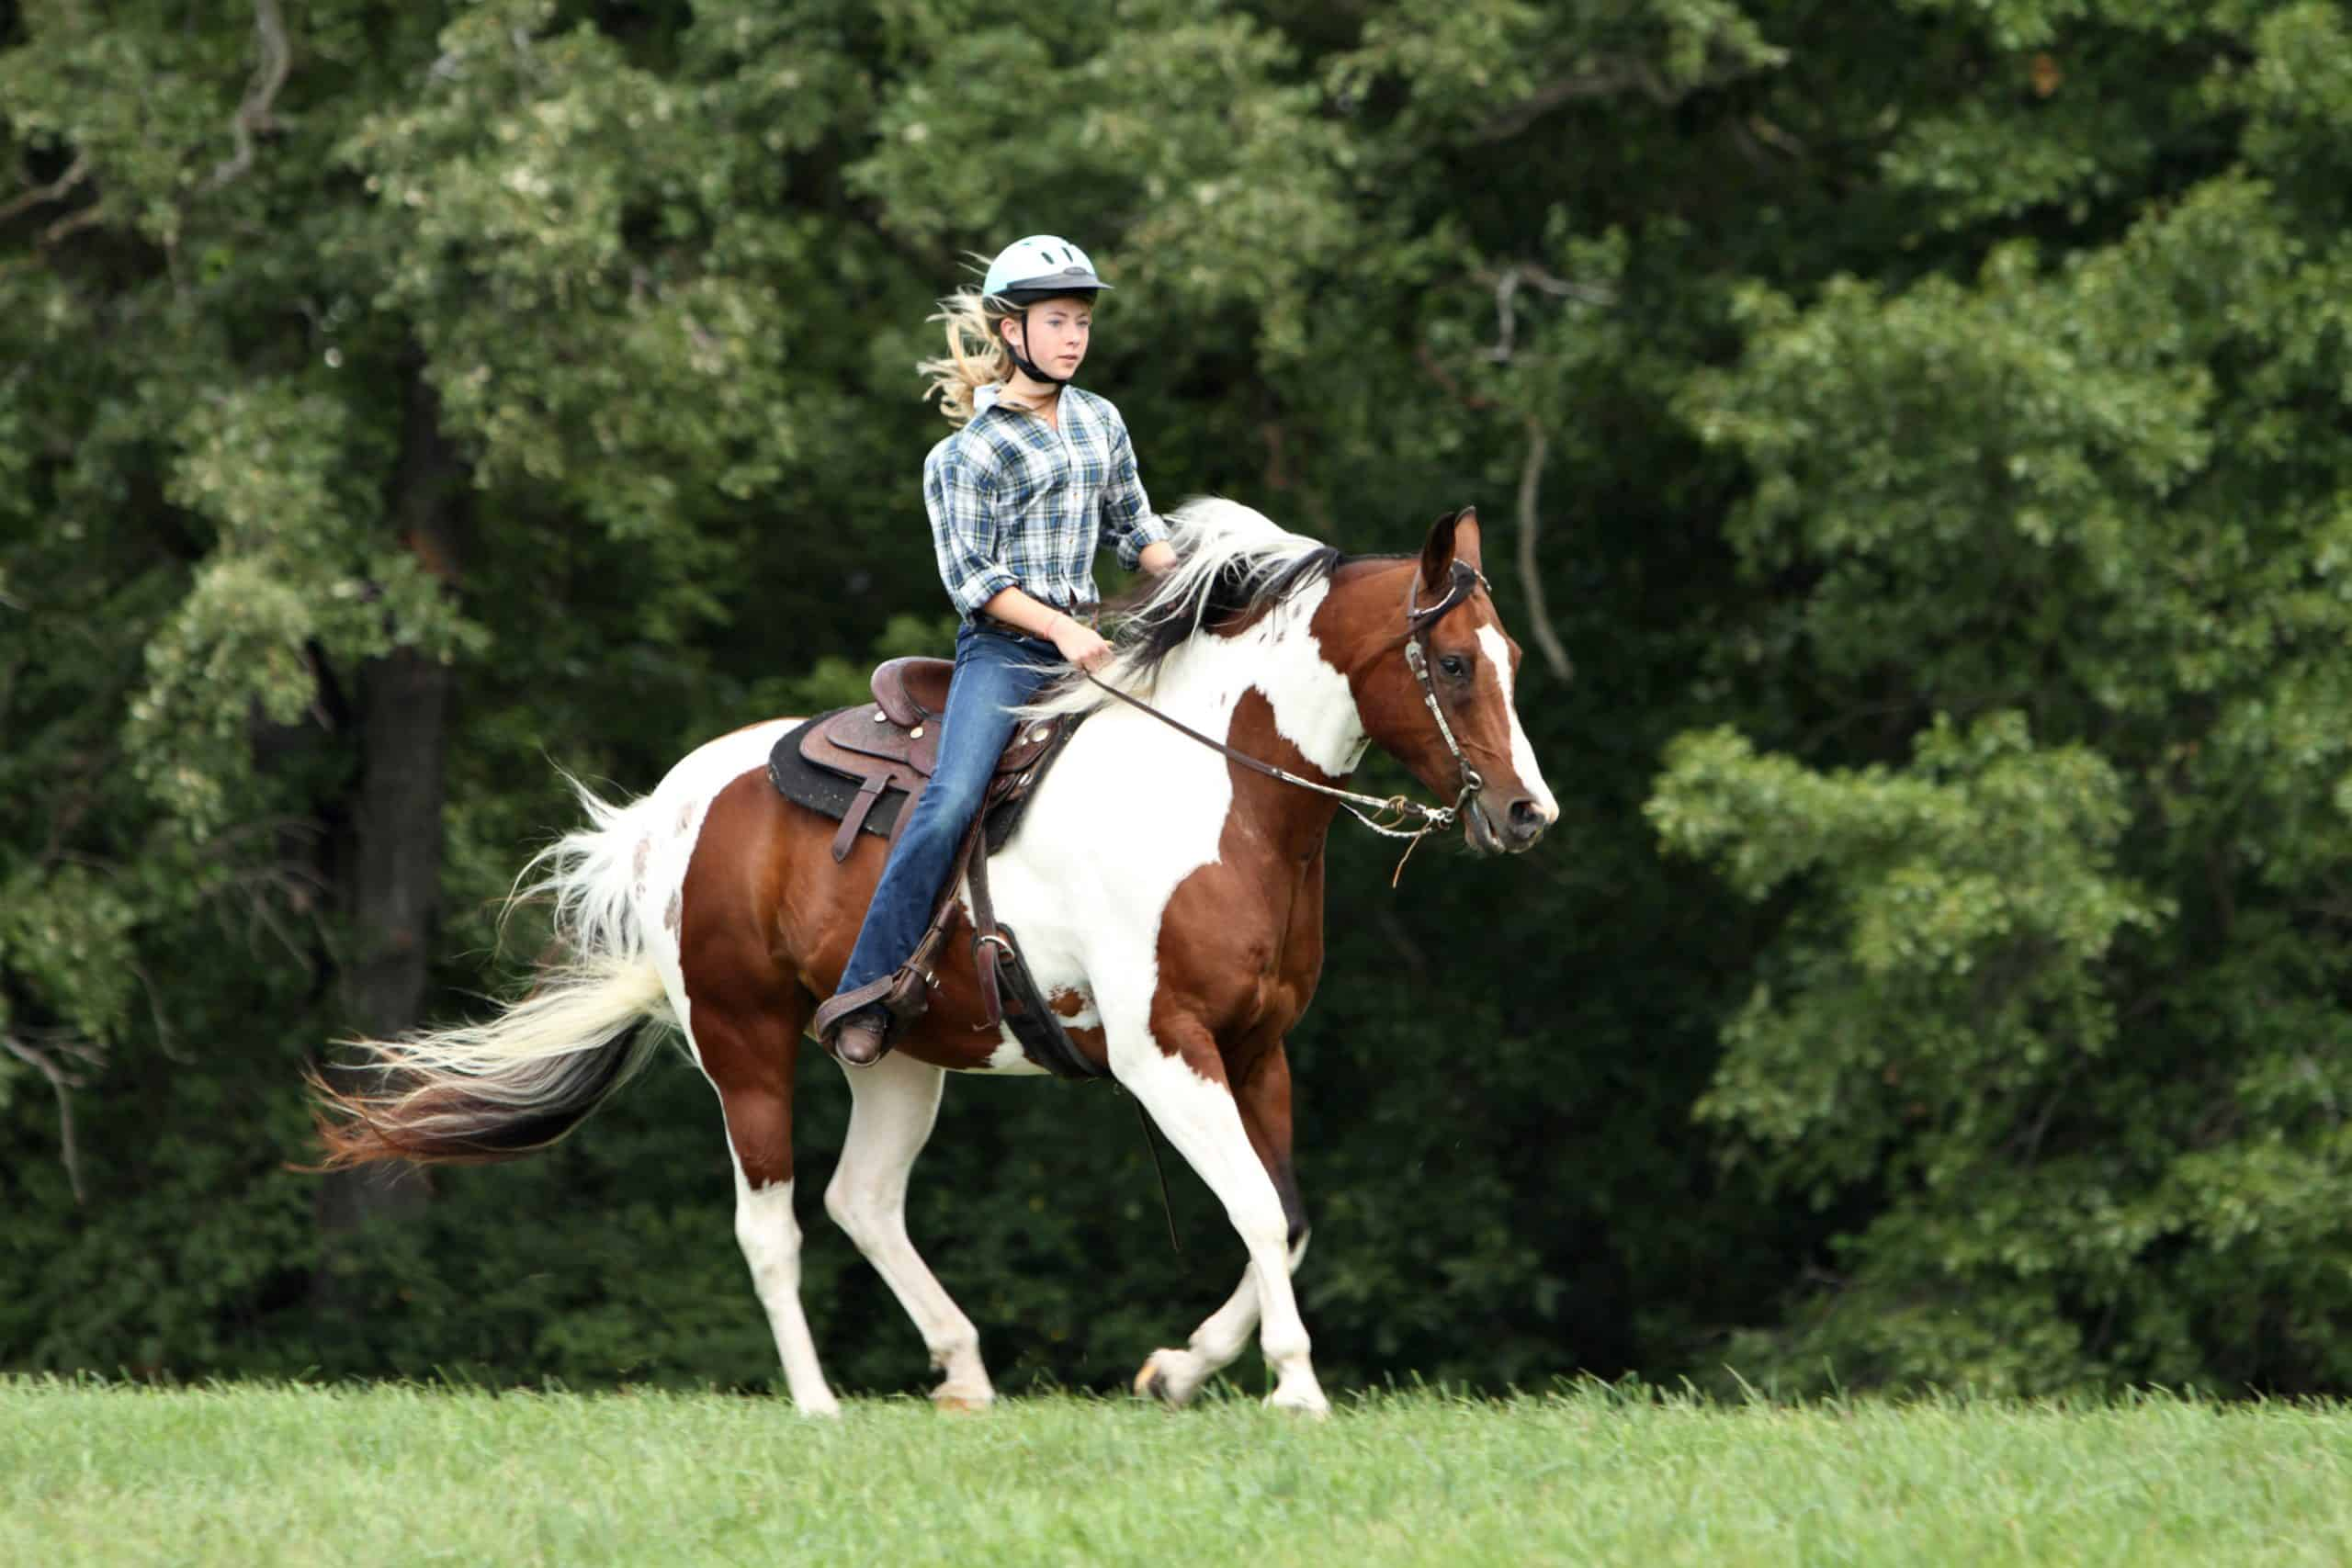 Teenage girl riding a running horse